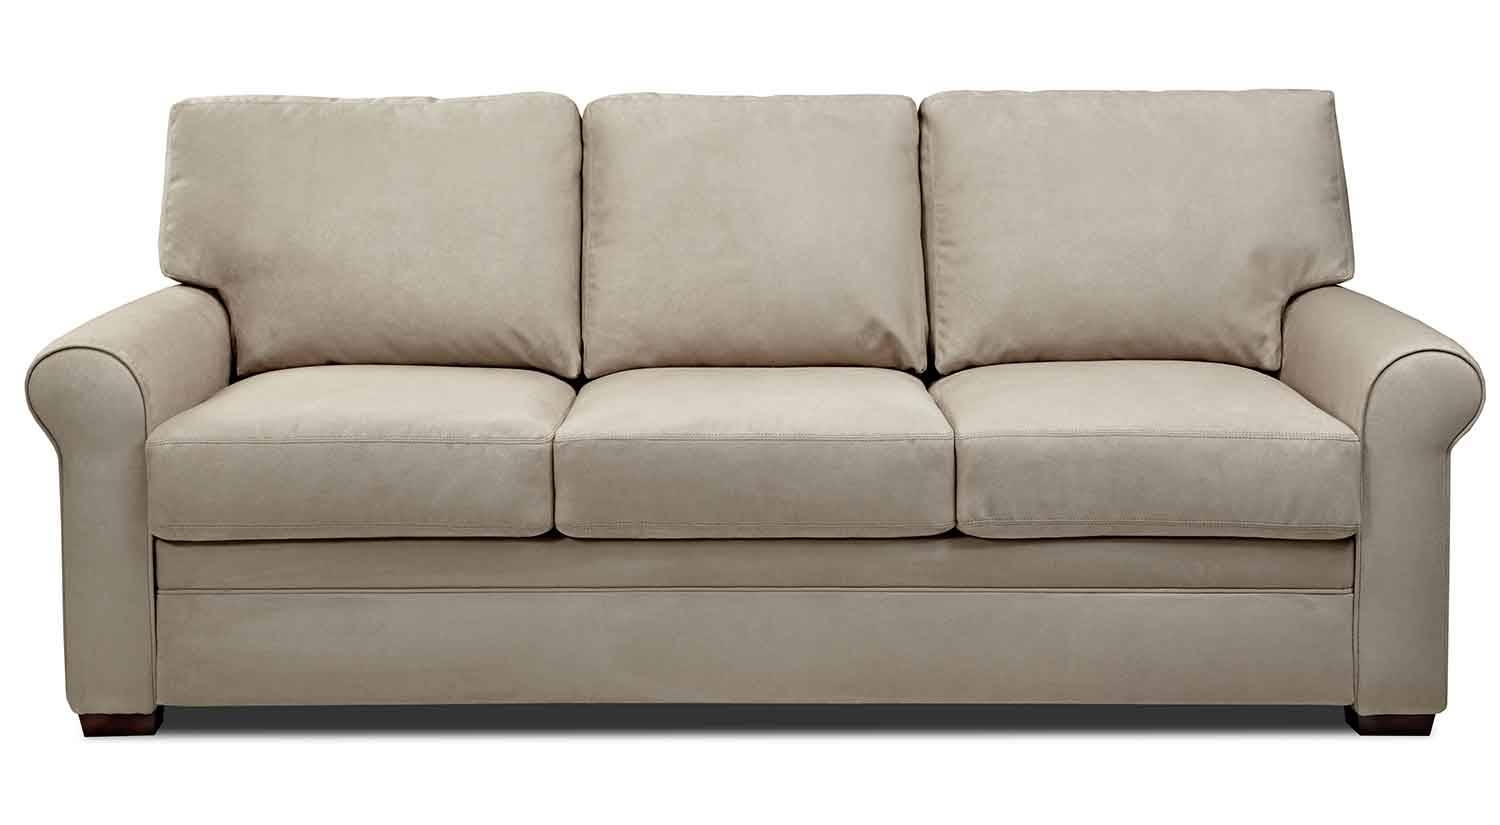 Circle Furniture - Gina Comfort Sleeper | Sleep Sofas | Sleeper pertaining to Comfort Sleeper Sofas (Image 5 of 30)